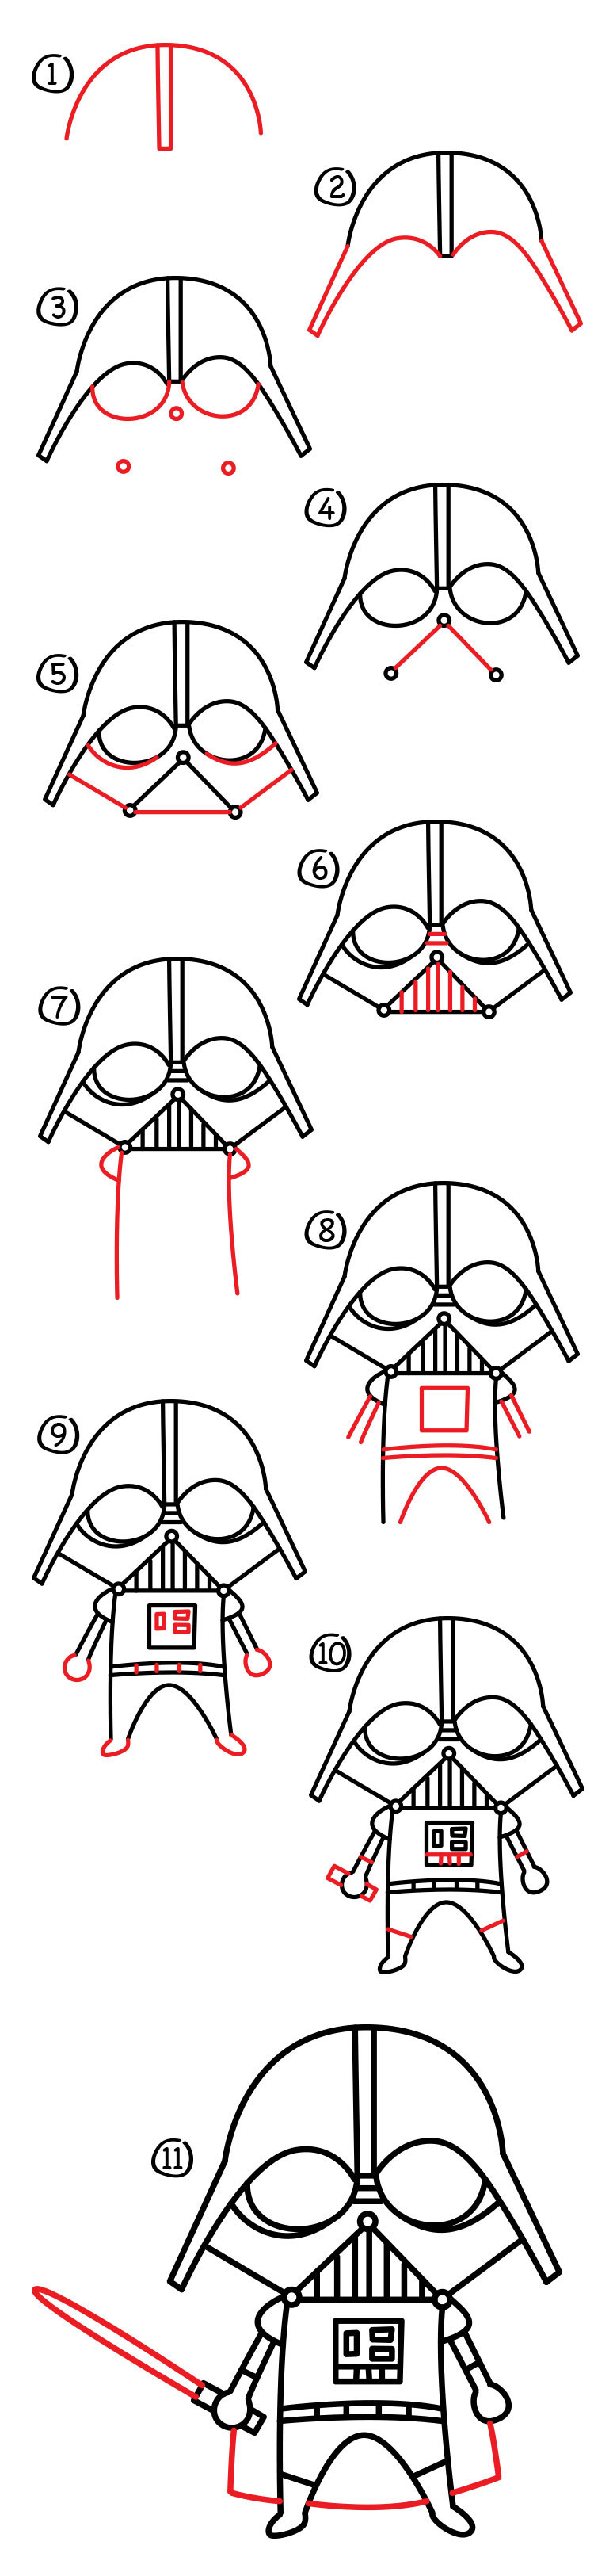 How To Draw A Cartoon Darth Vader - Art For Kids Hub